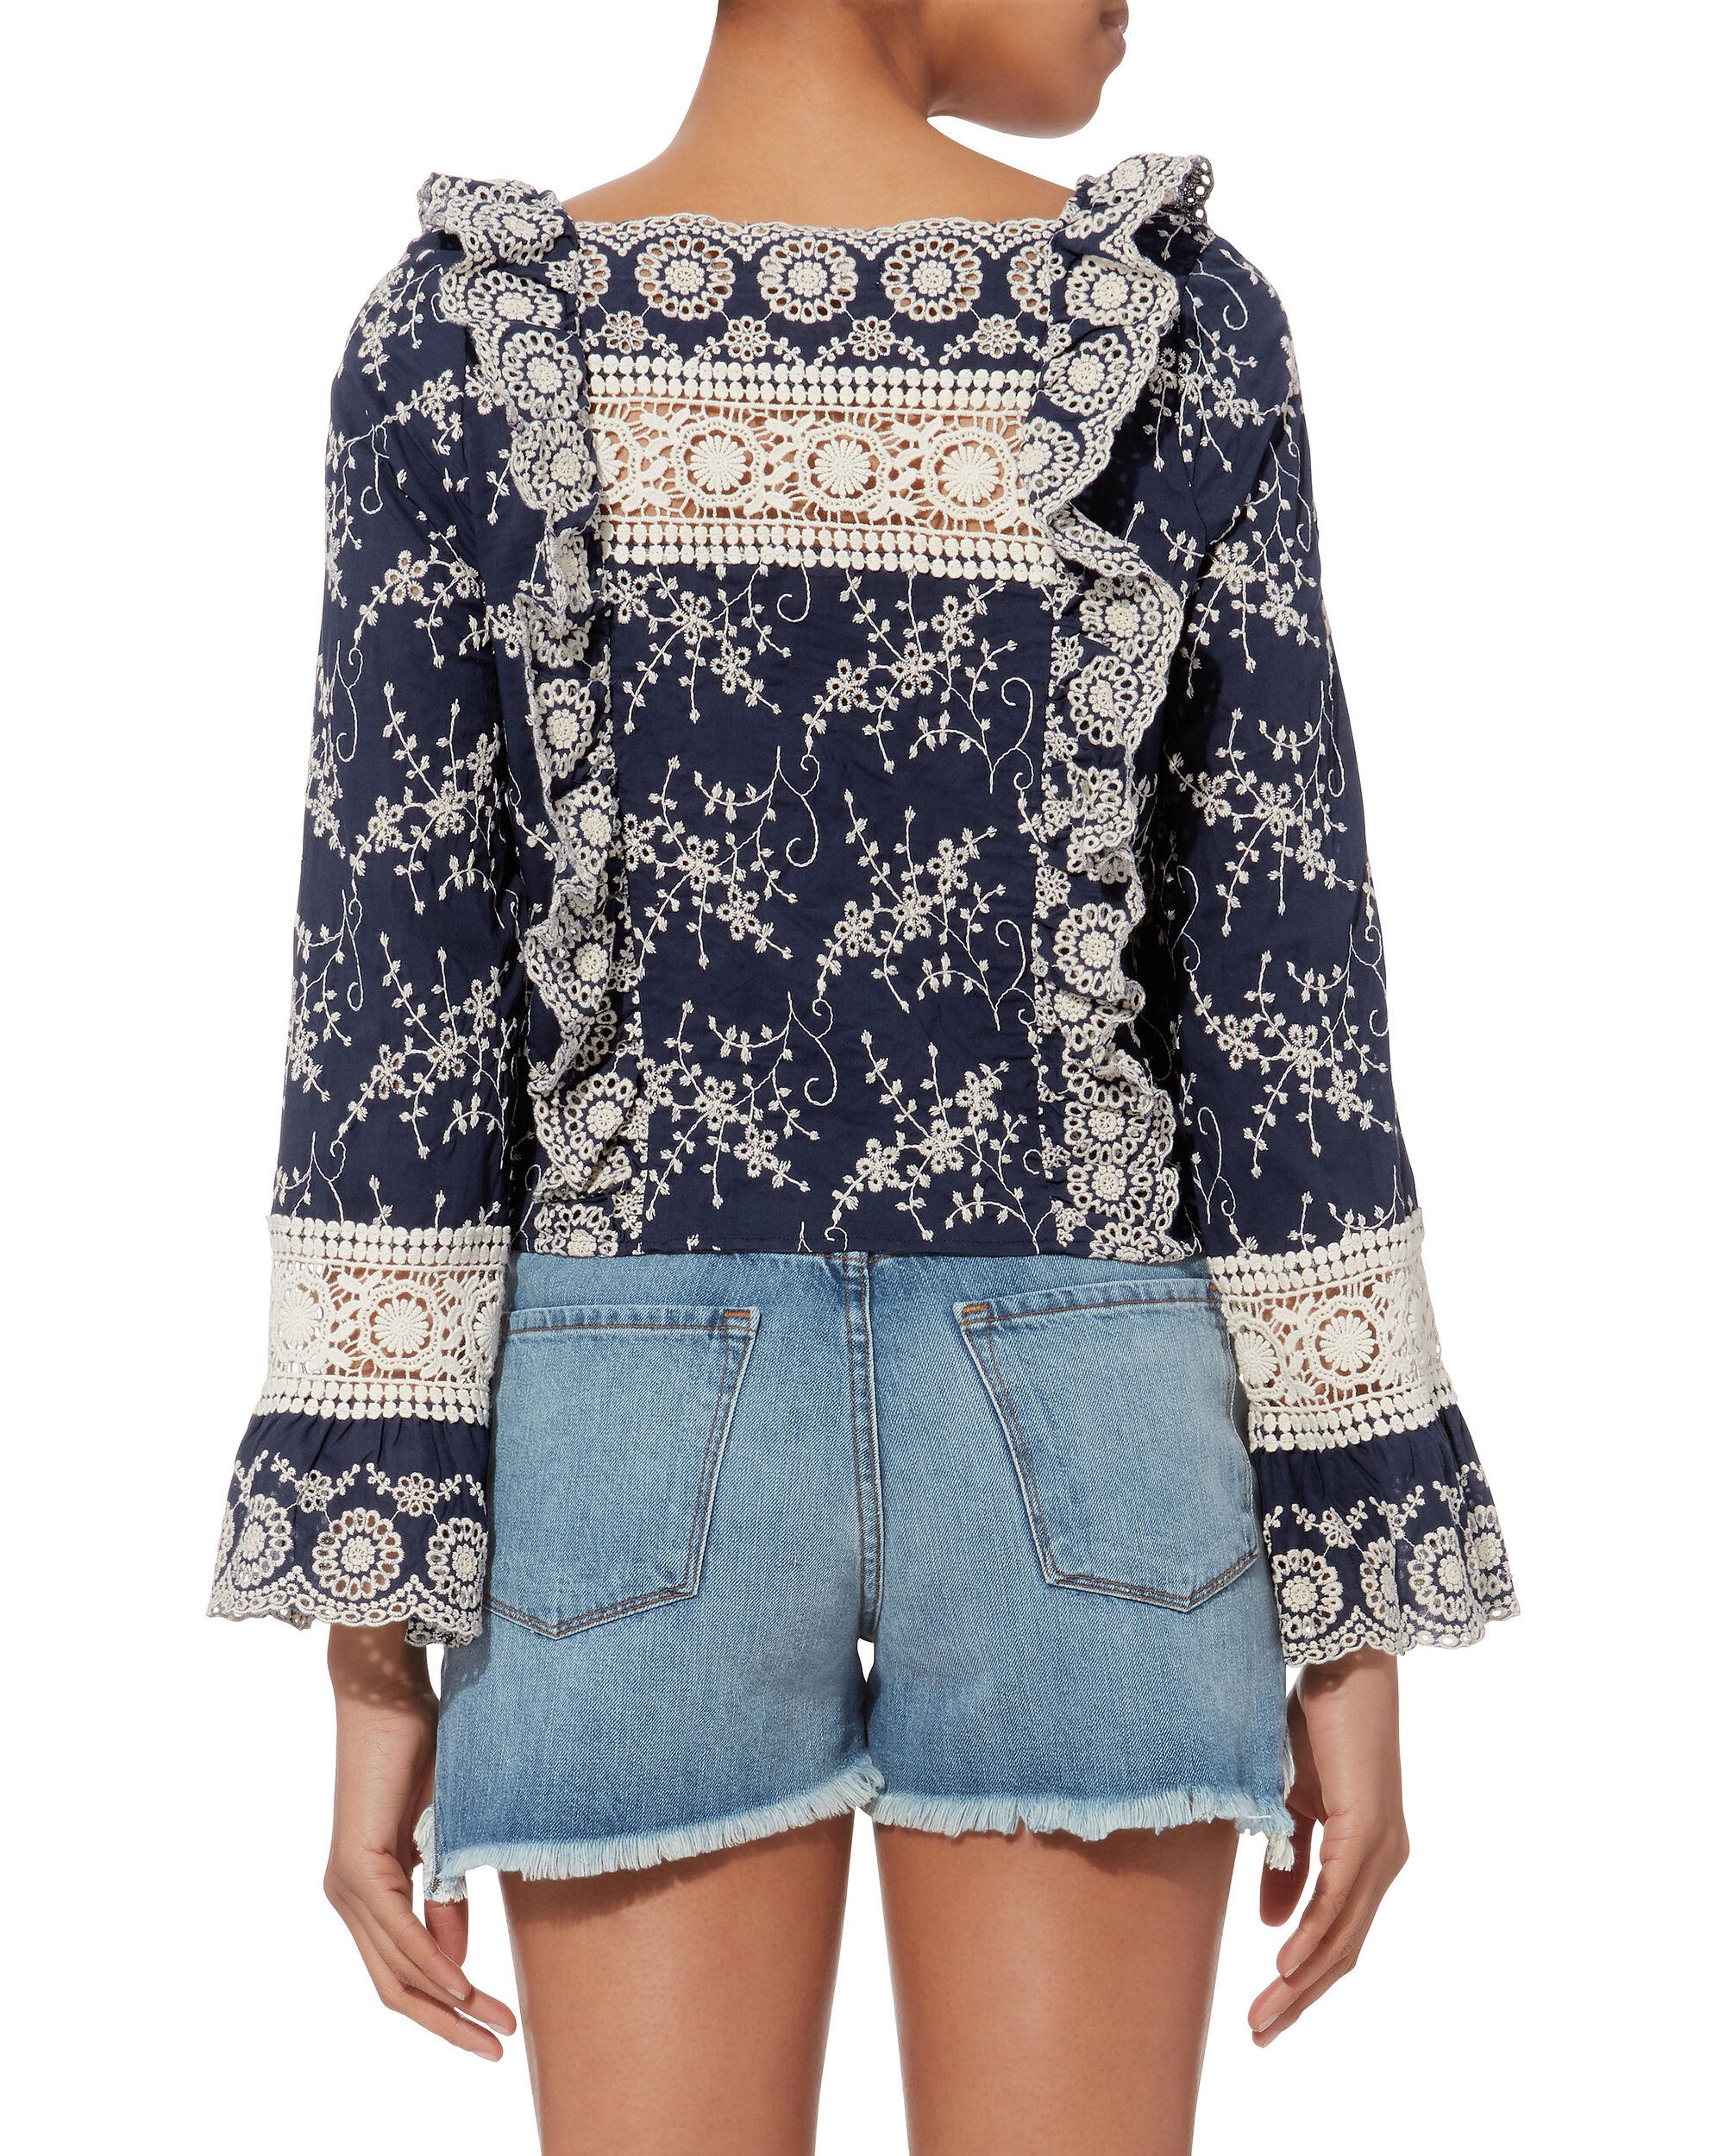 Clementine Embroidered Blouse, NAVY, hi-res